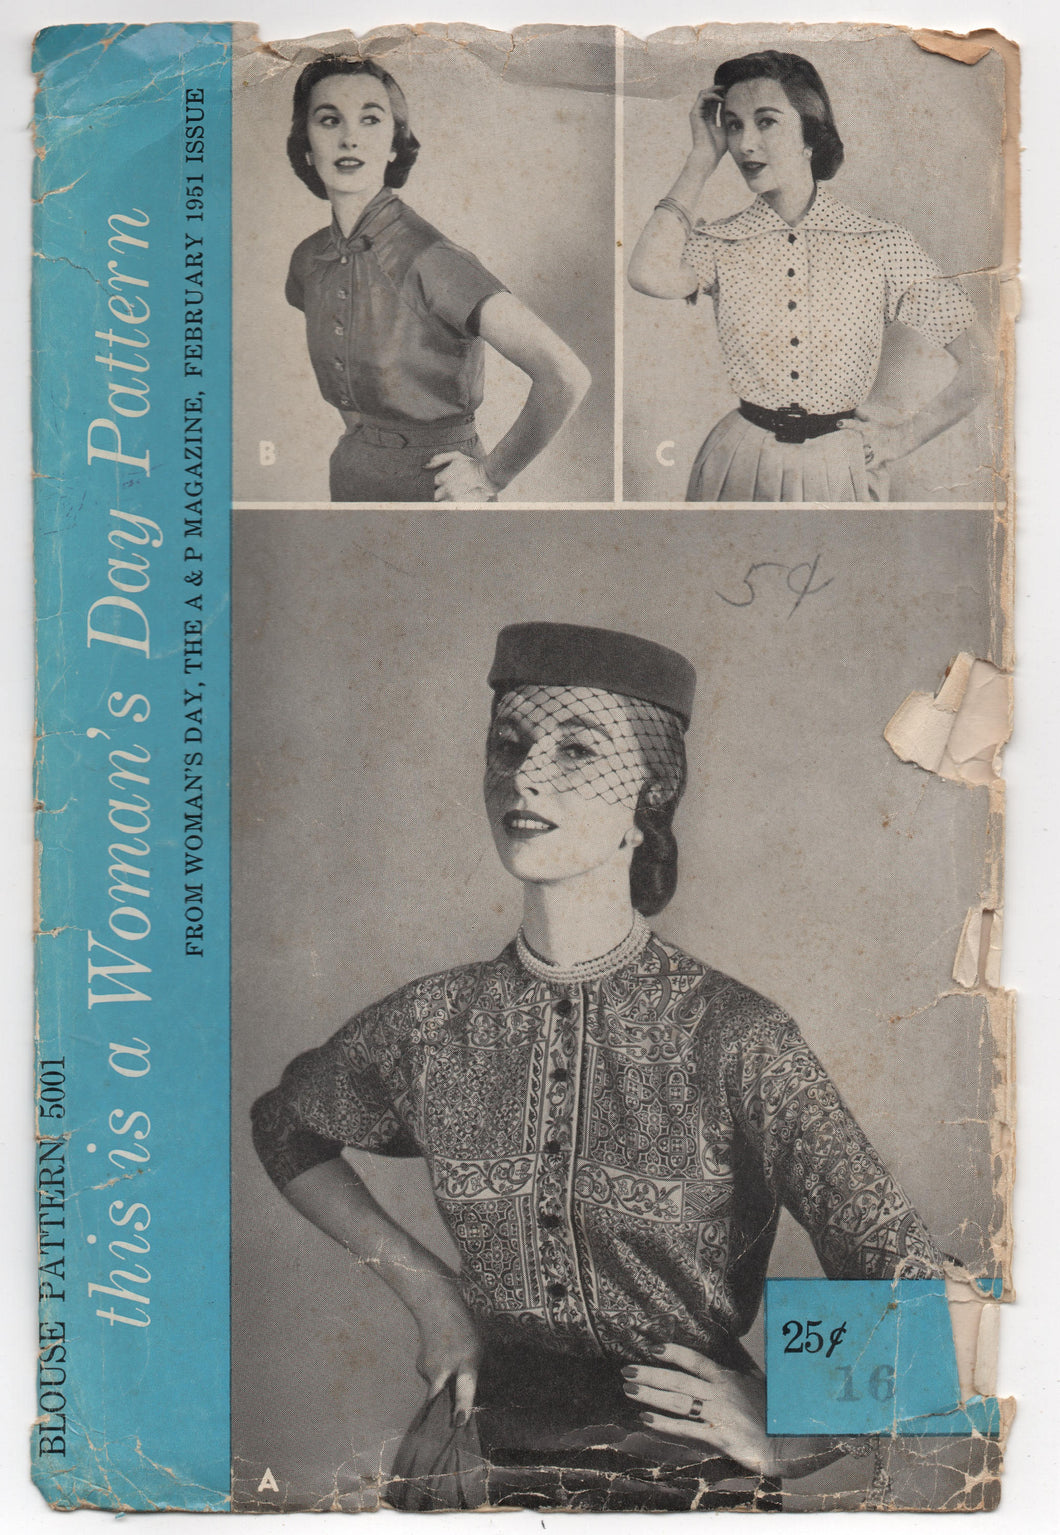 1950's Women's Day Blouse with 3/4 Raglan Sleeves and Three Collar Styles - Bust 34